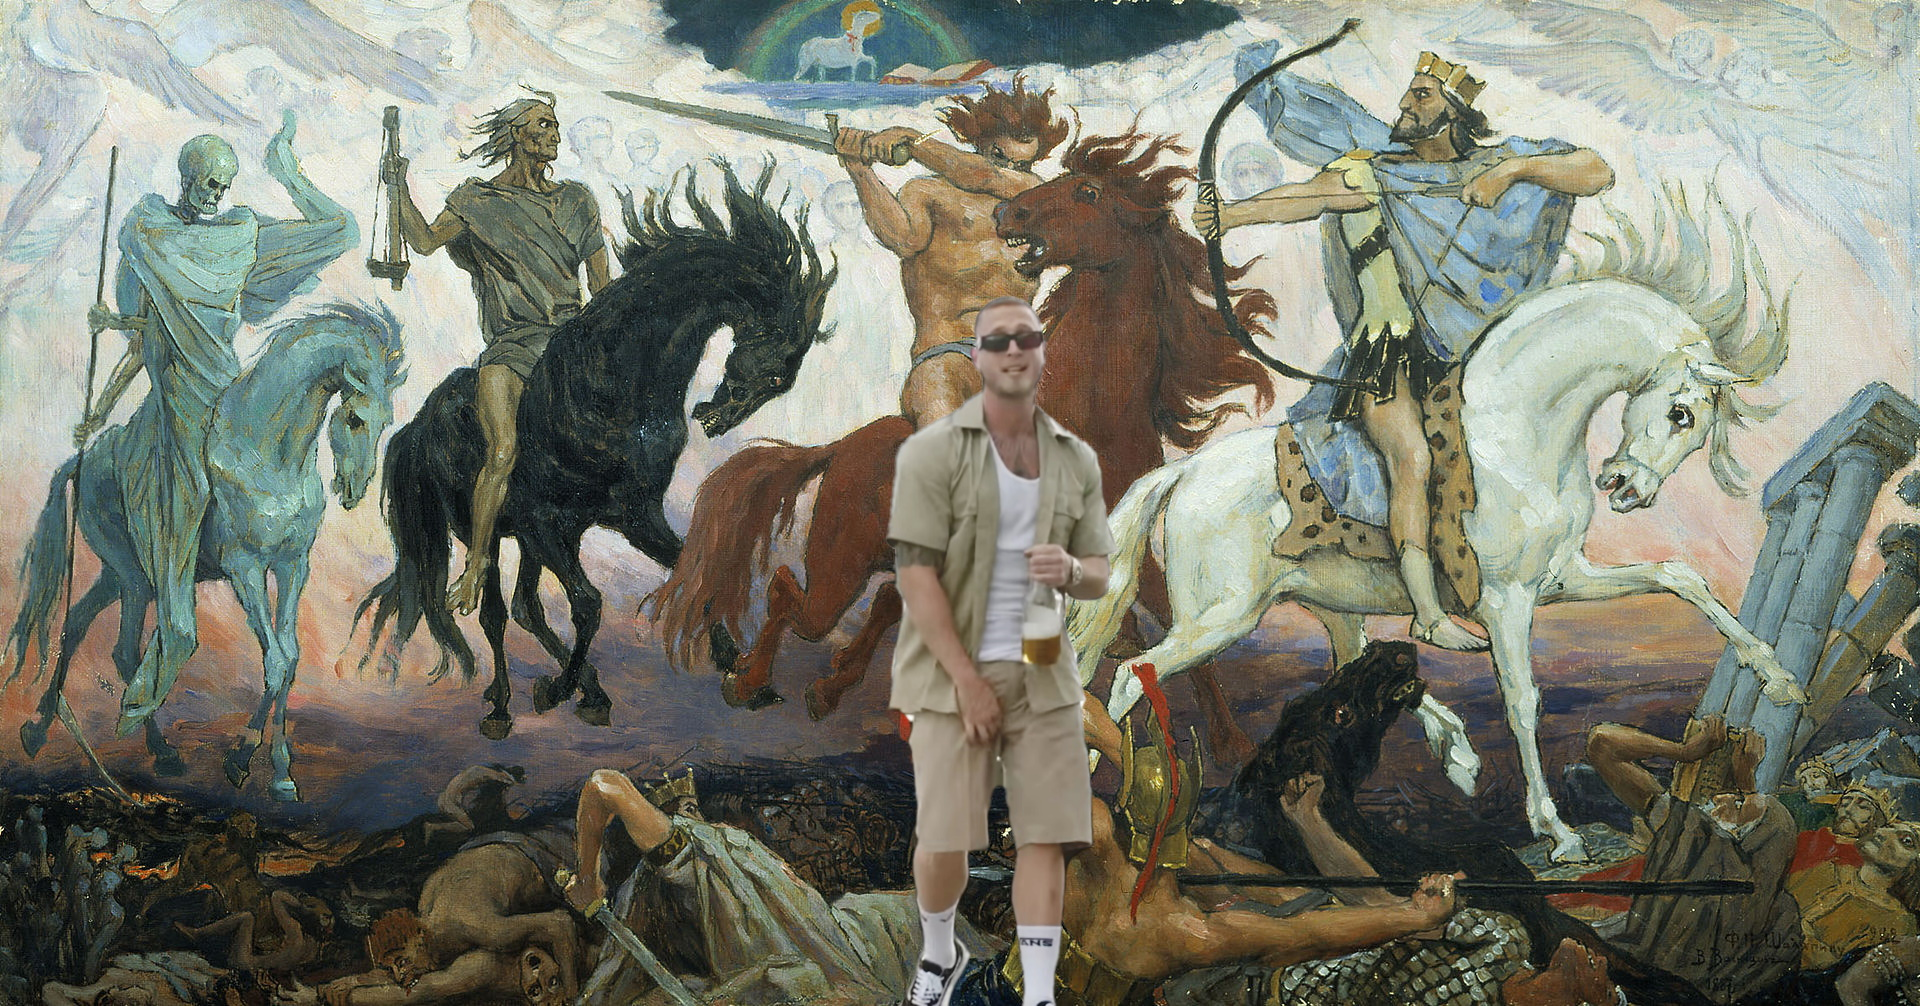 An image of Chet Hanx superimposed upon a dramatic painting of the apocalypse